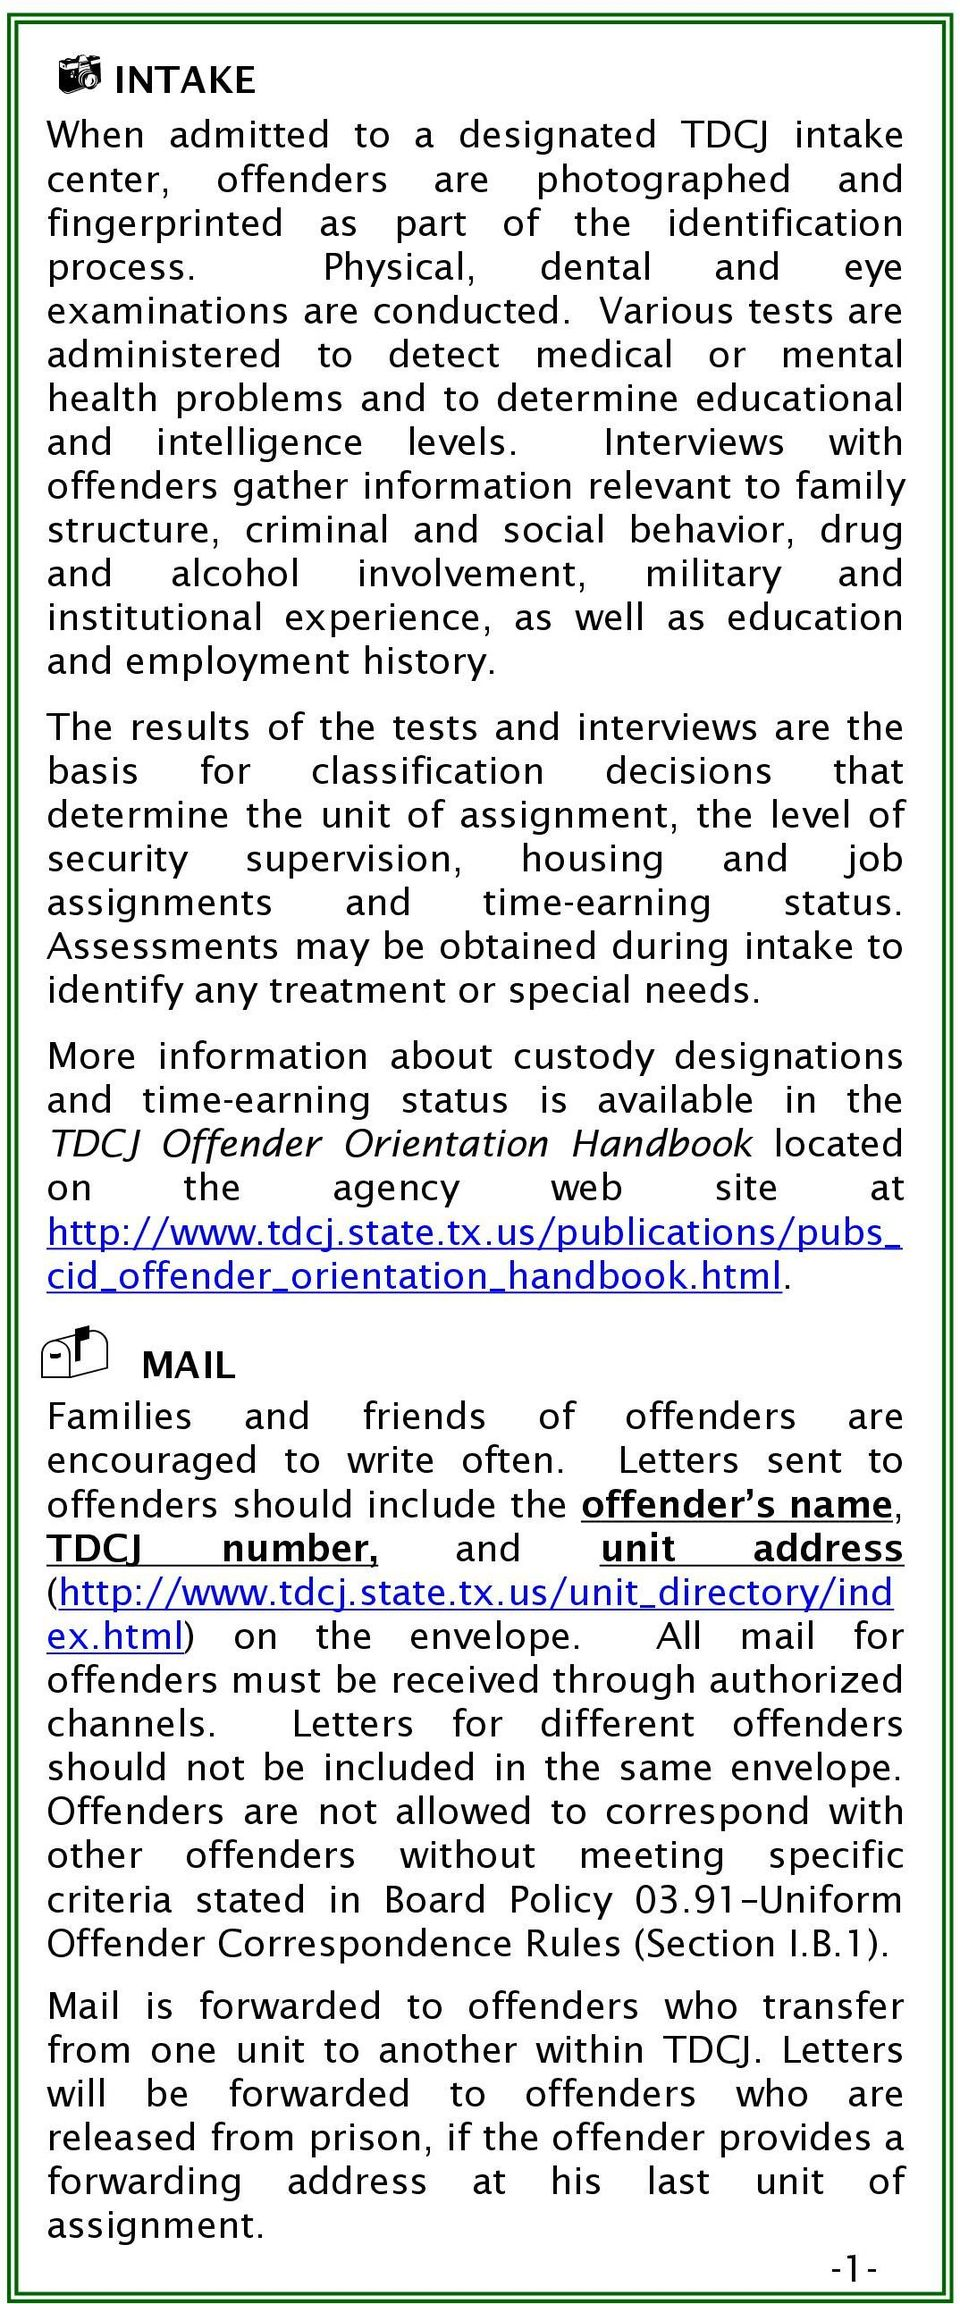 Interviews with offenders gather information relevant to family structure, criminal and social behavior, drug and alcohol involvement, military and institutional experience, as well as education and